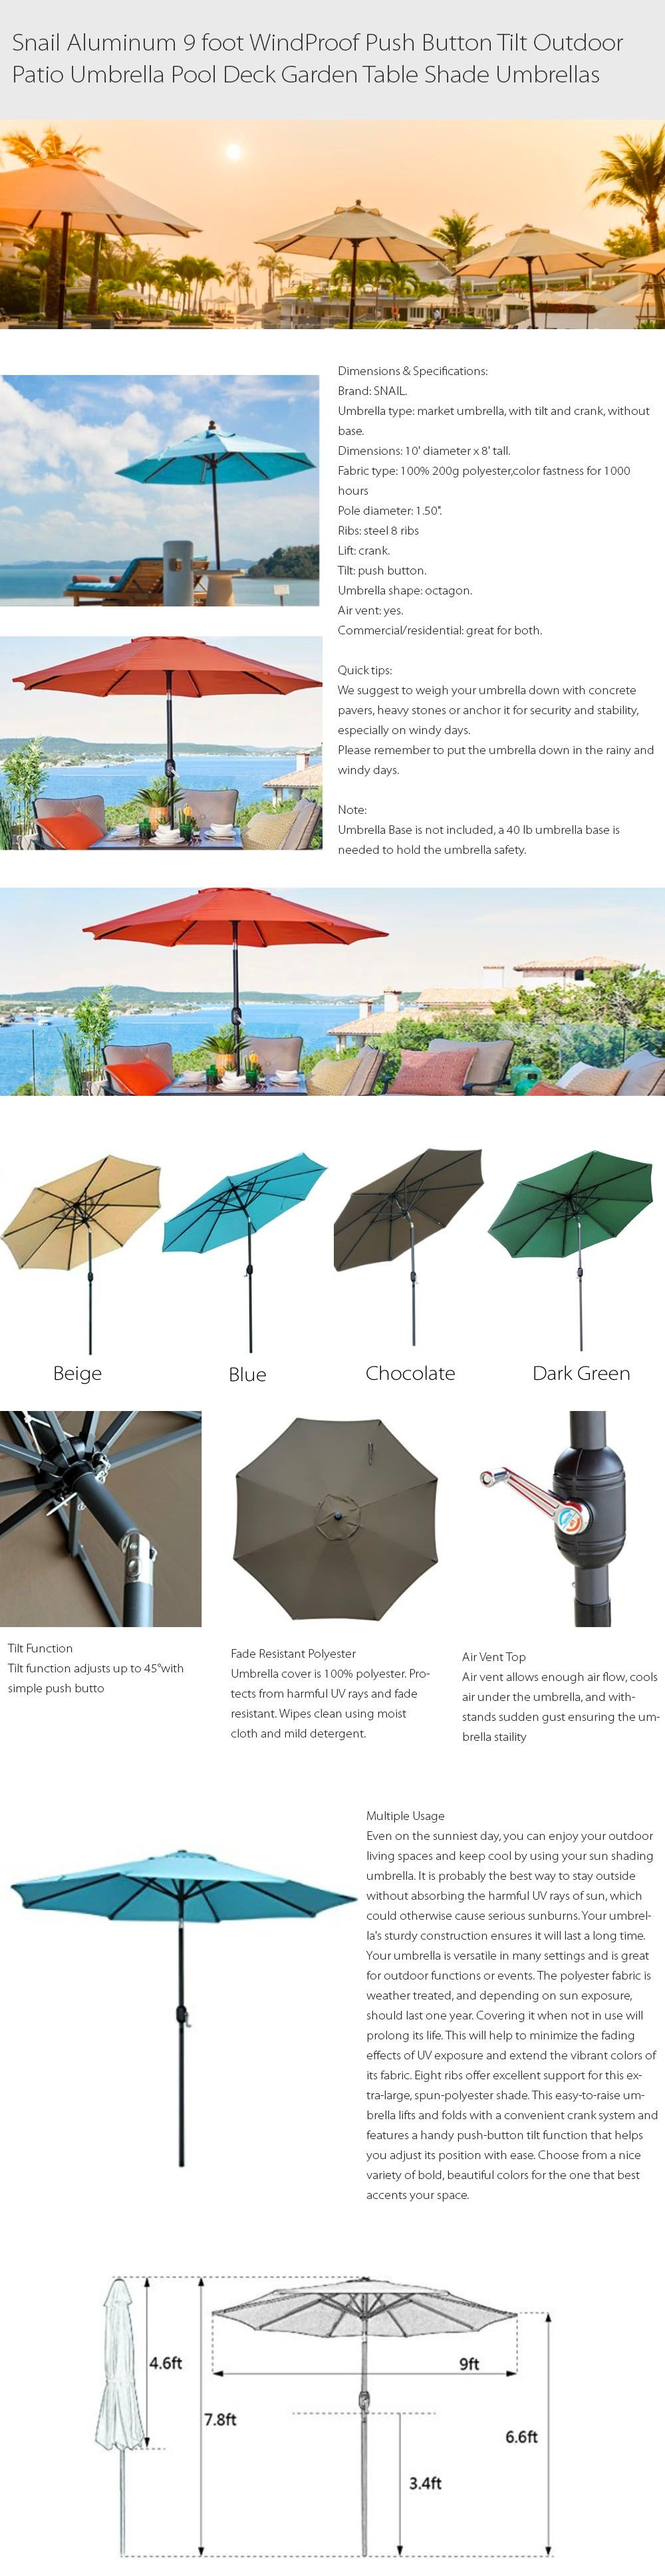 9 ft Patio Umbrella Windproof & Rust Resistant